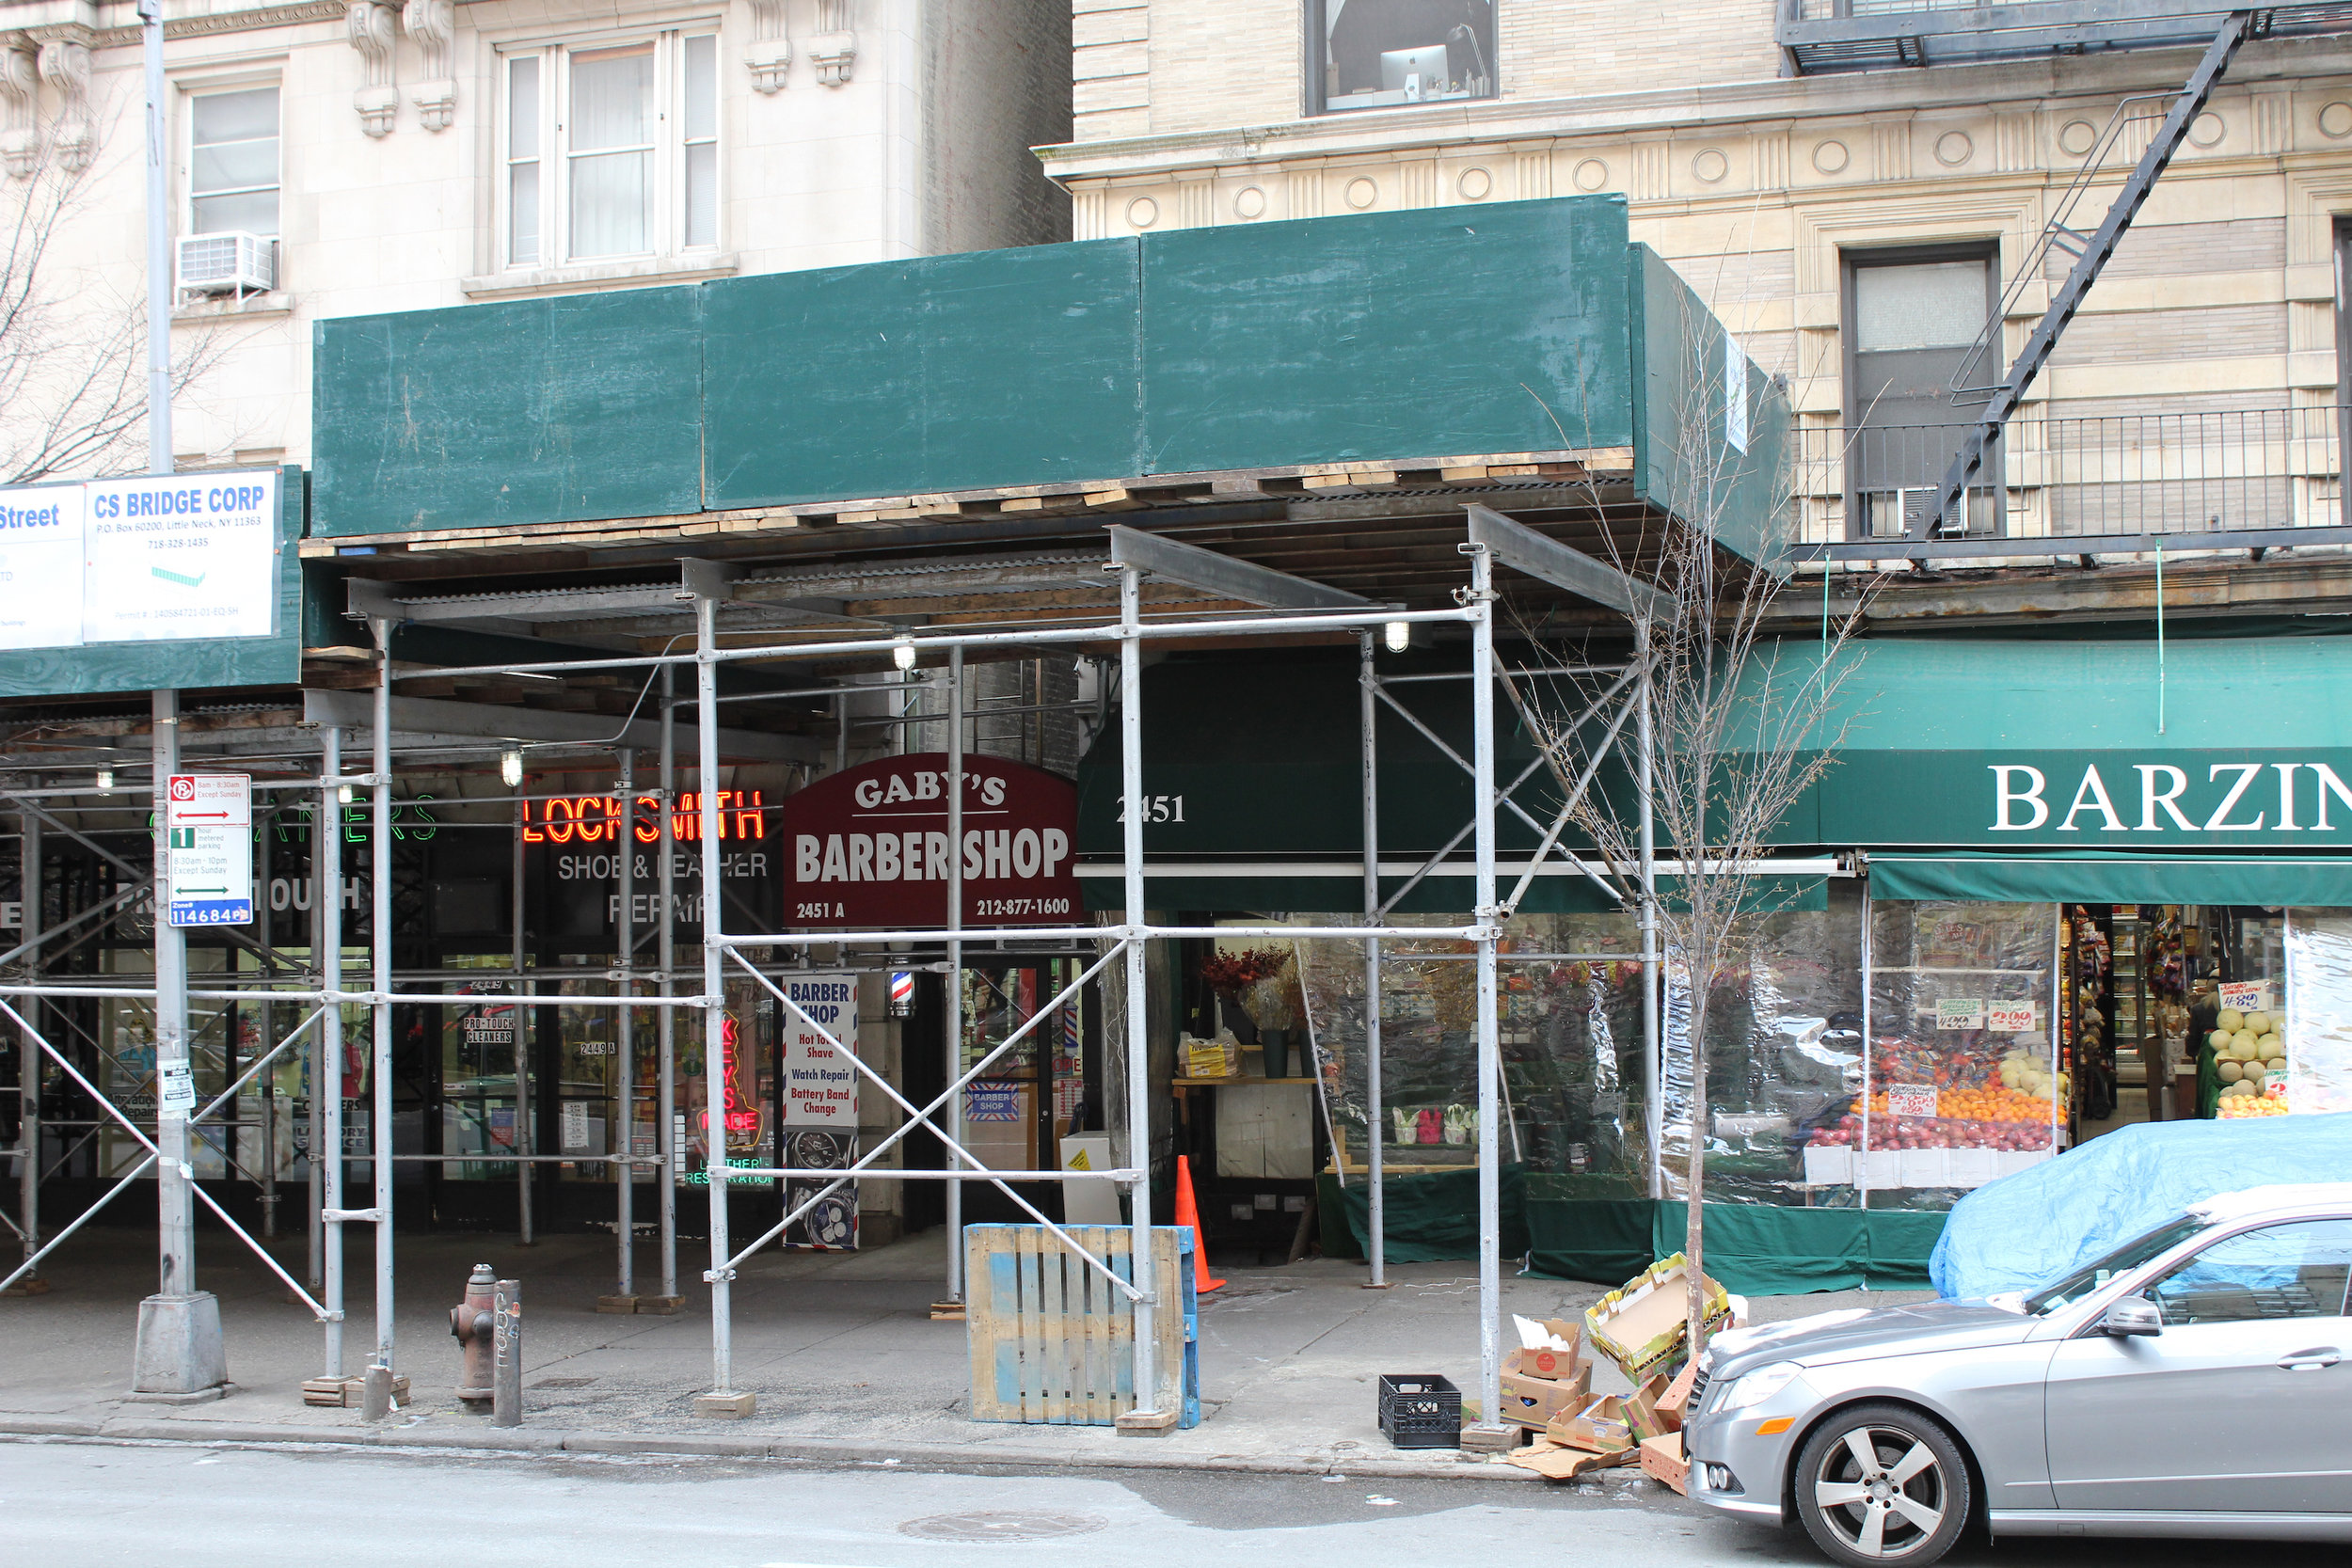 This section of the Upper West Side presents an eclectic mix of shops that have managed to hold on for several decades, alongside newcomers, like  Soul Cycle ,  Le Pain Quotidien ,  Petco , and  Equinox .